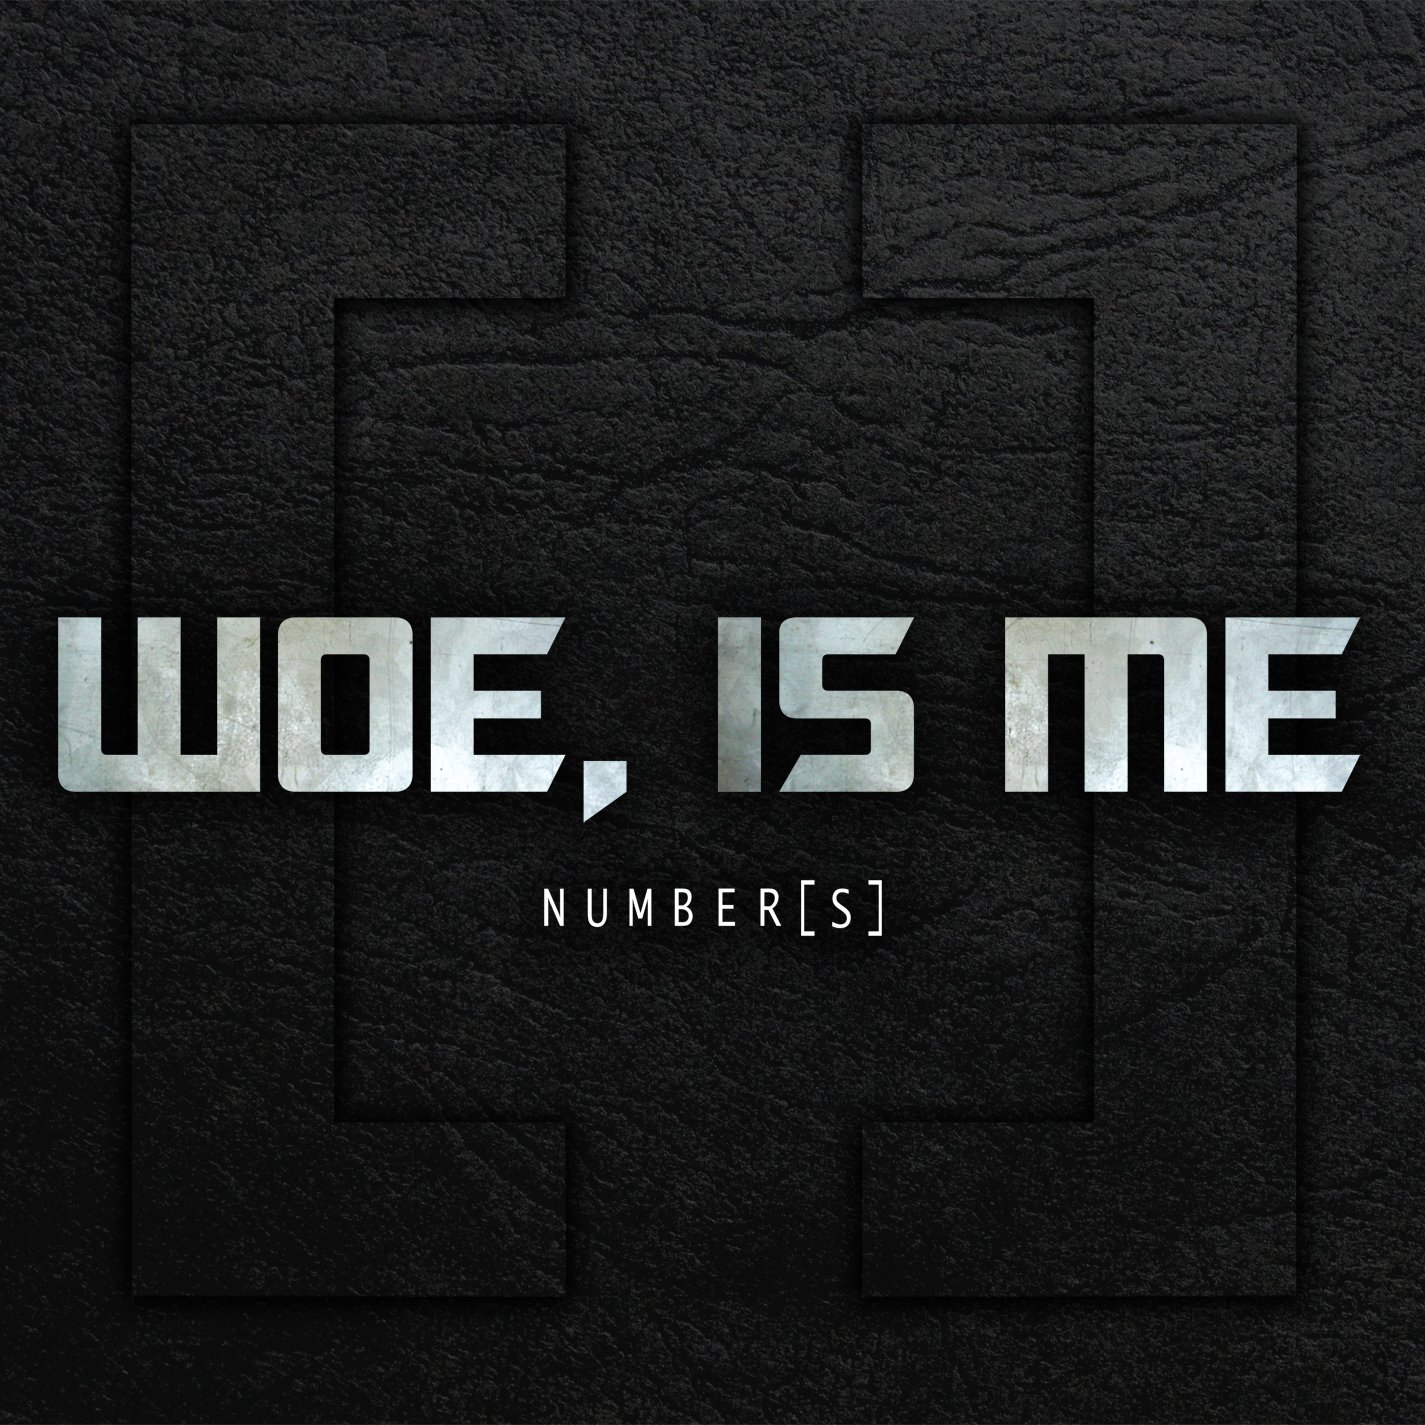 CD : Woe Is Me - Number[s] [deluxe] [reissue] (Deluxe Edition, Reissue)